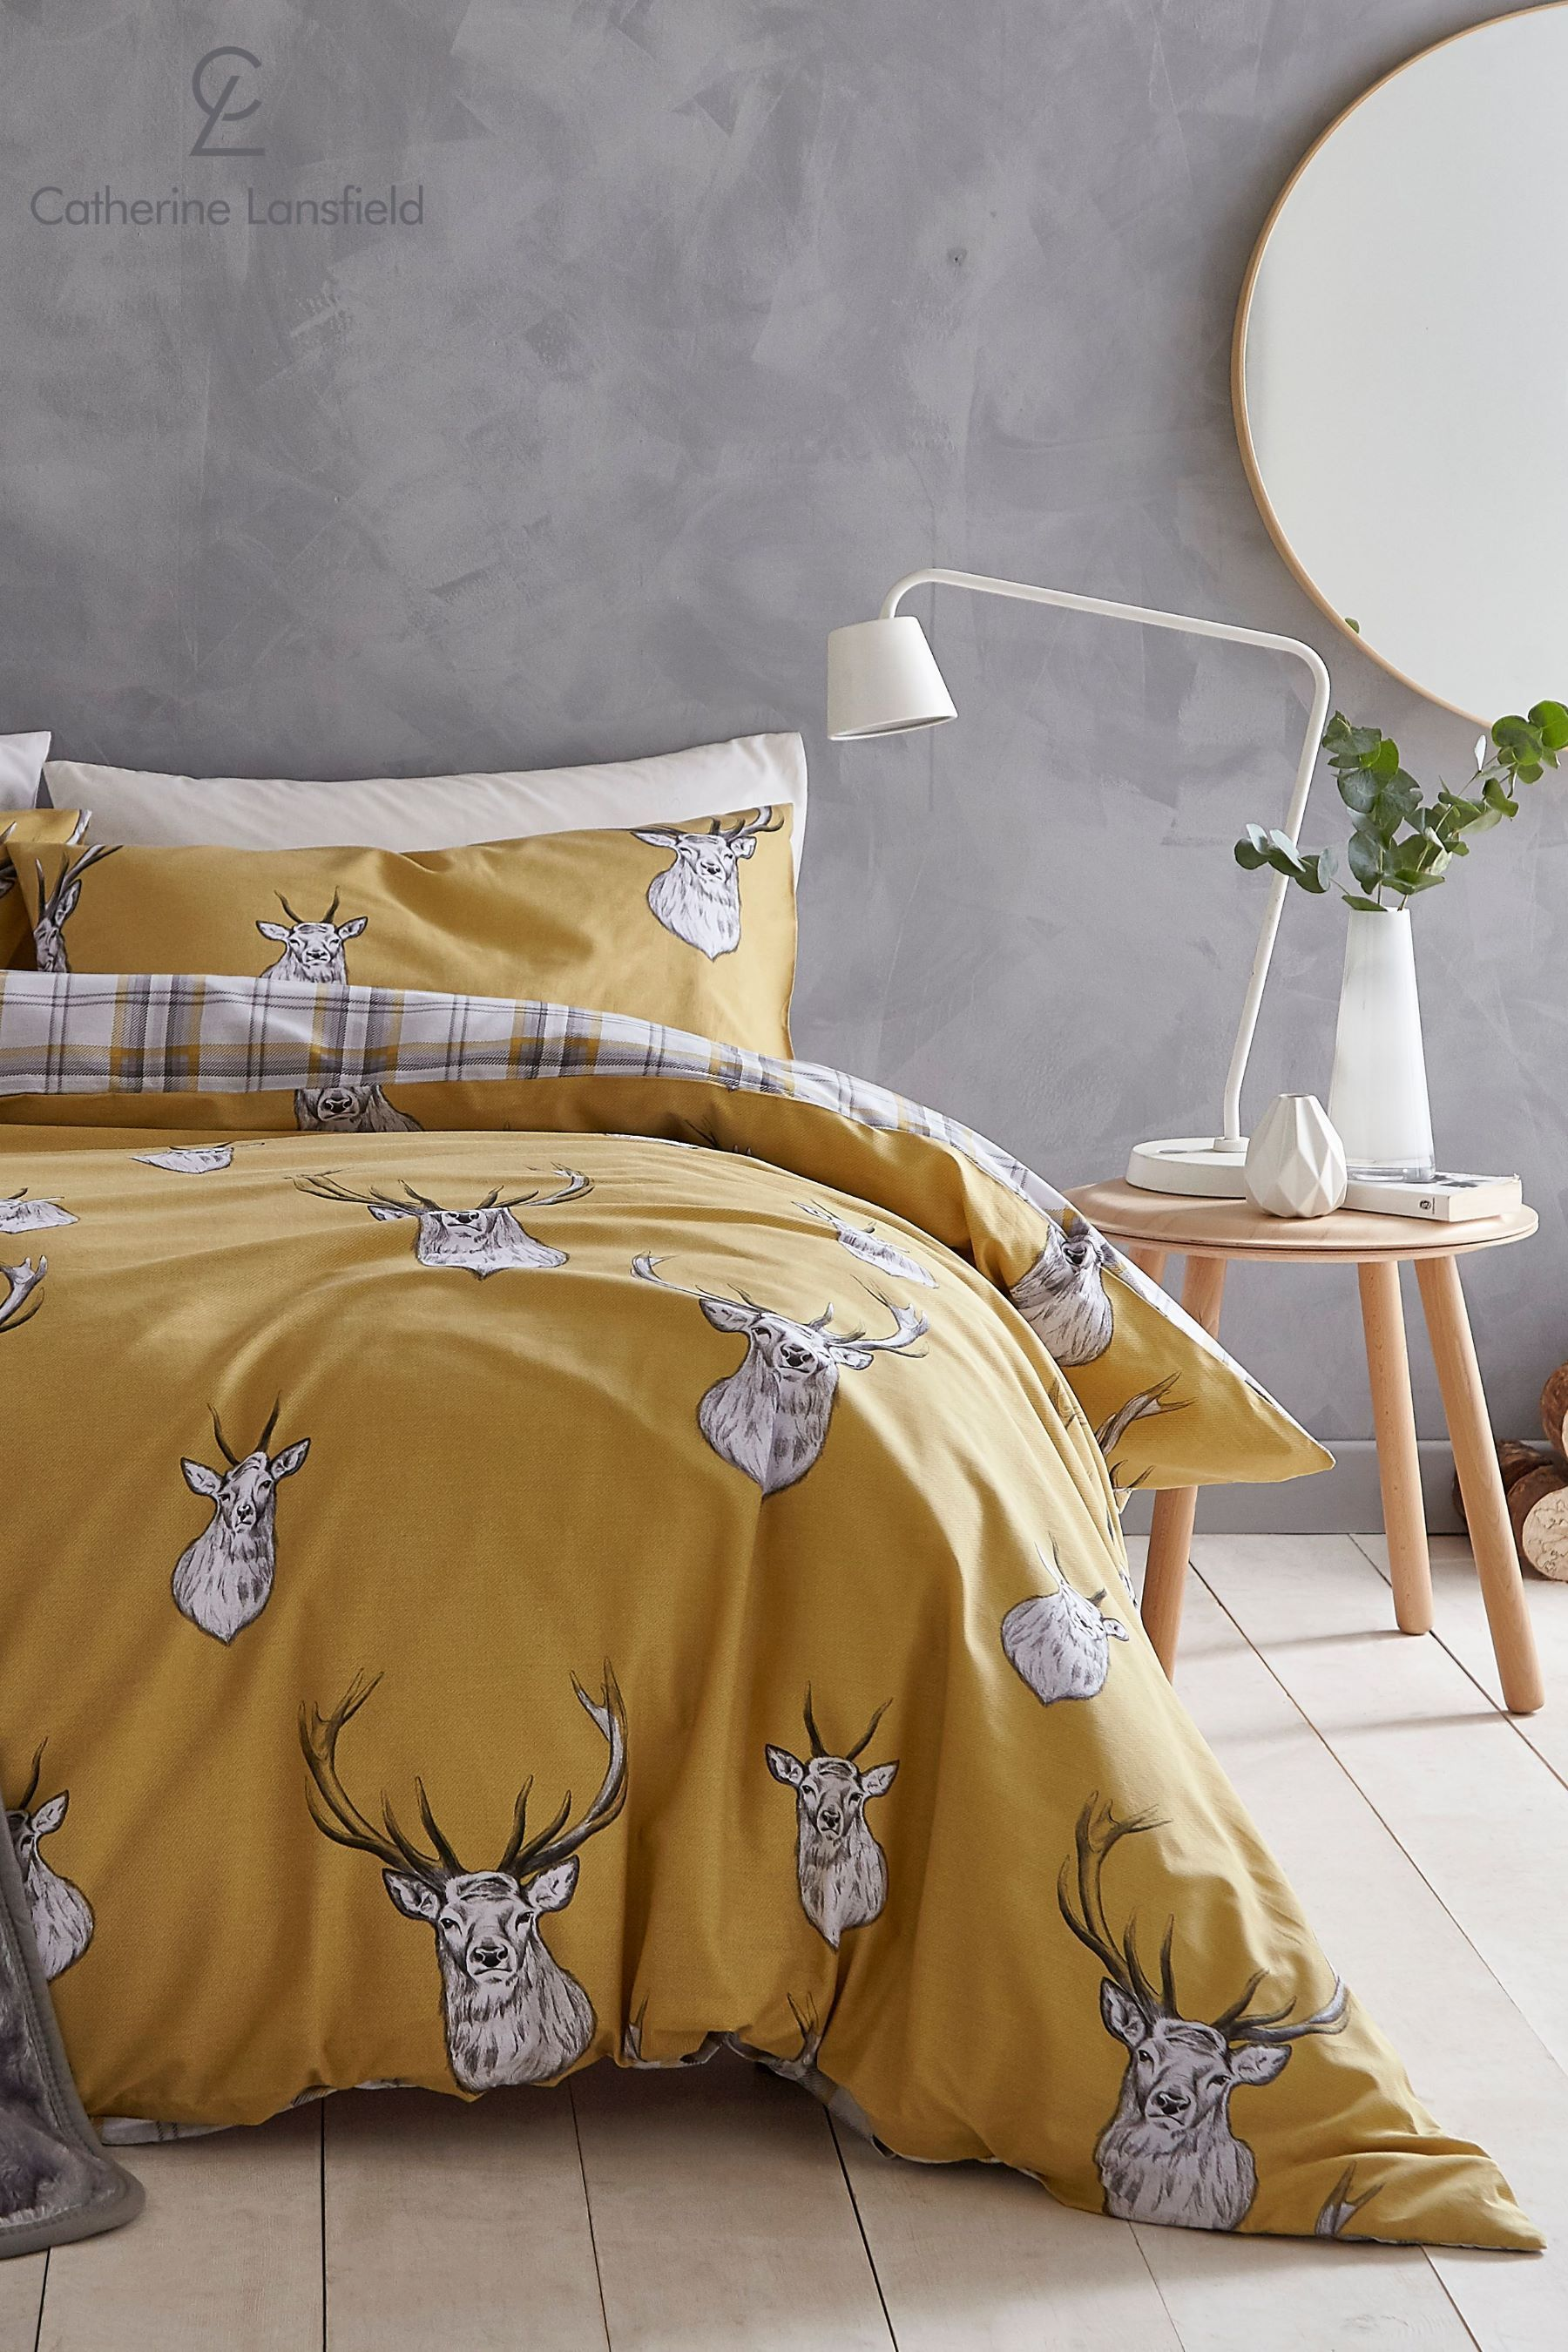 CATHERINE LANSFIELD STAG DOUBLE DUVET COVER SET BEIGE NEW DEER